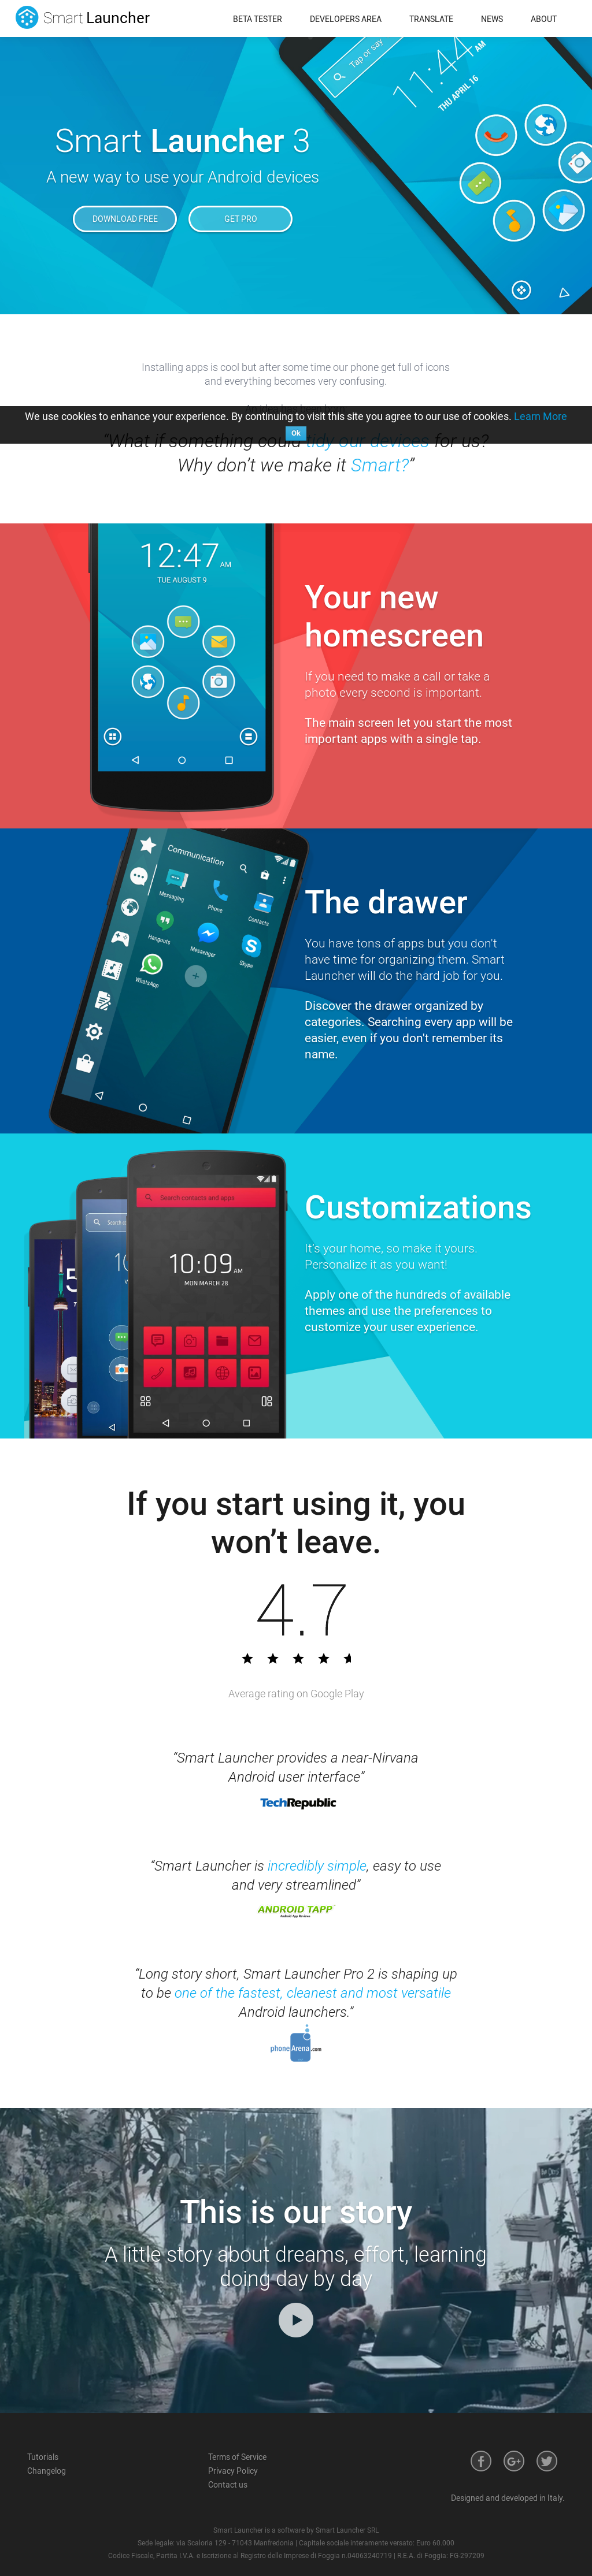 Smart Launcher Competitors, Revenue and Employees - Owler